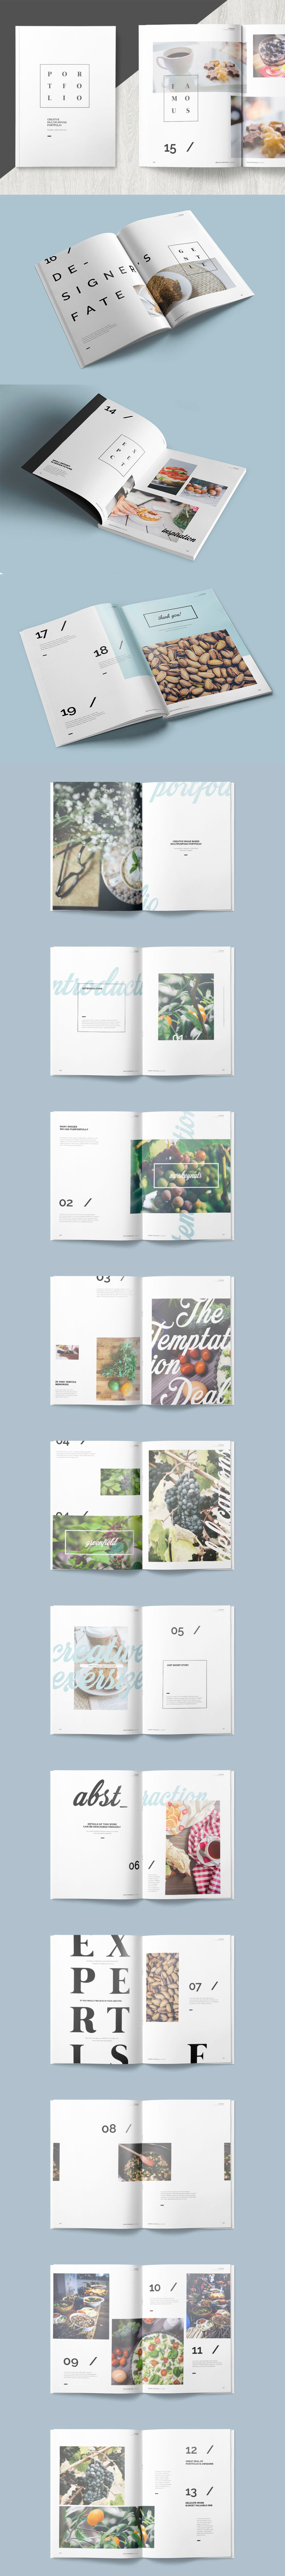 Multipurpose Portfolio Brochure Template InDesign INDD - 32 Pages ...